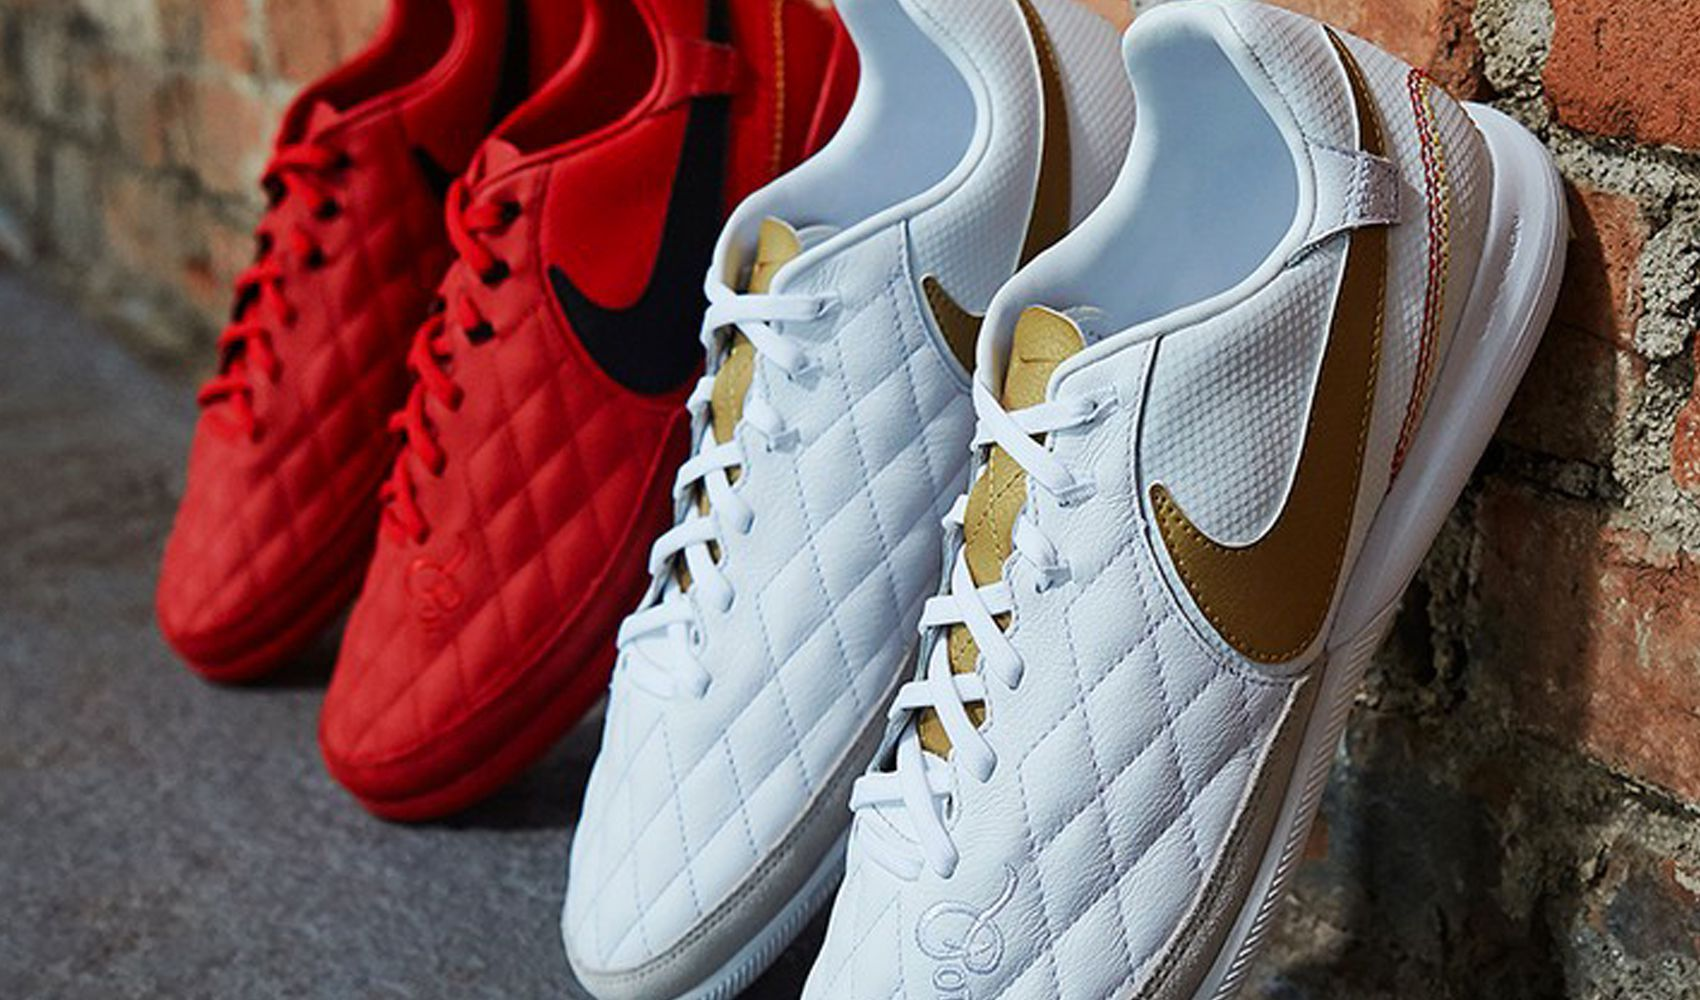 Quizás transferir Mantenimiento  Nike Football presents the R10 City Collection Barcelona and Milan